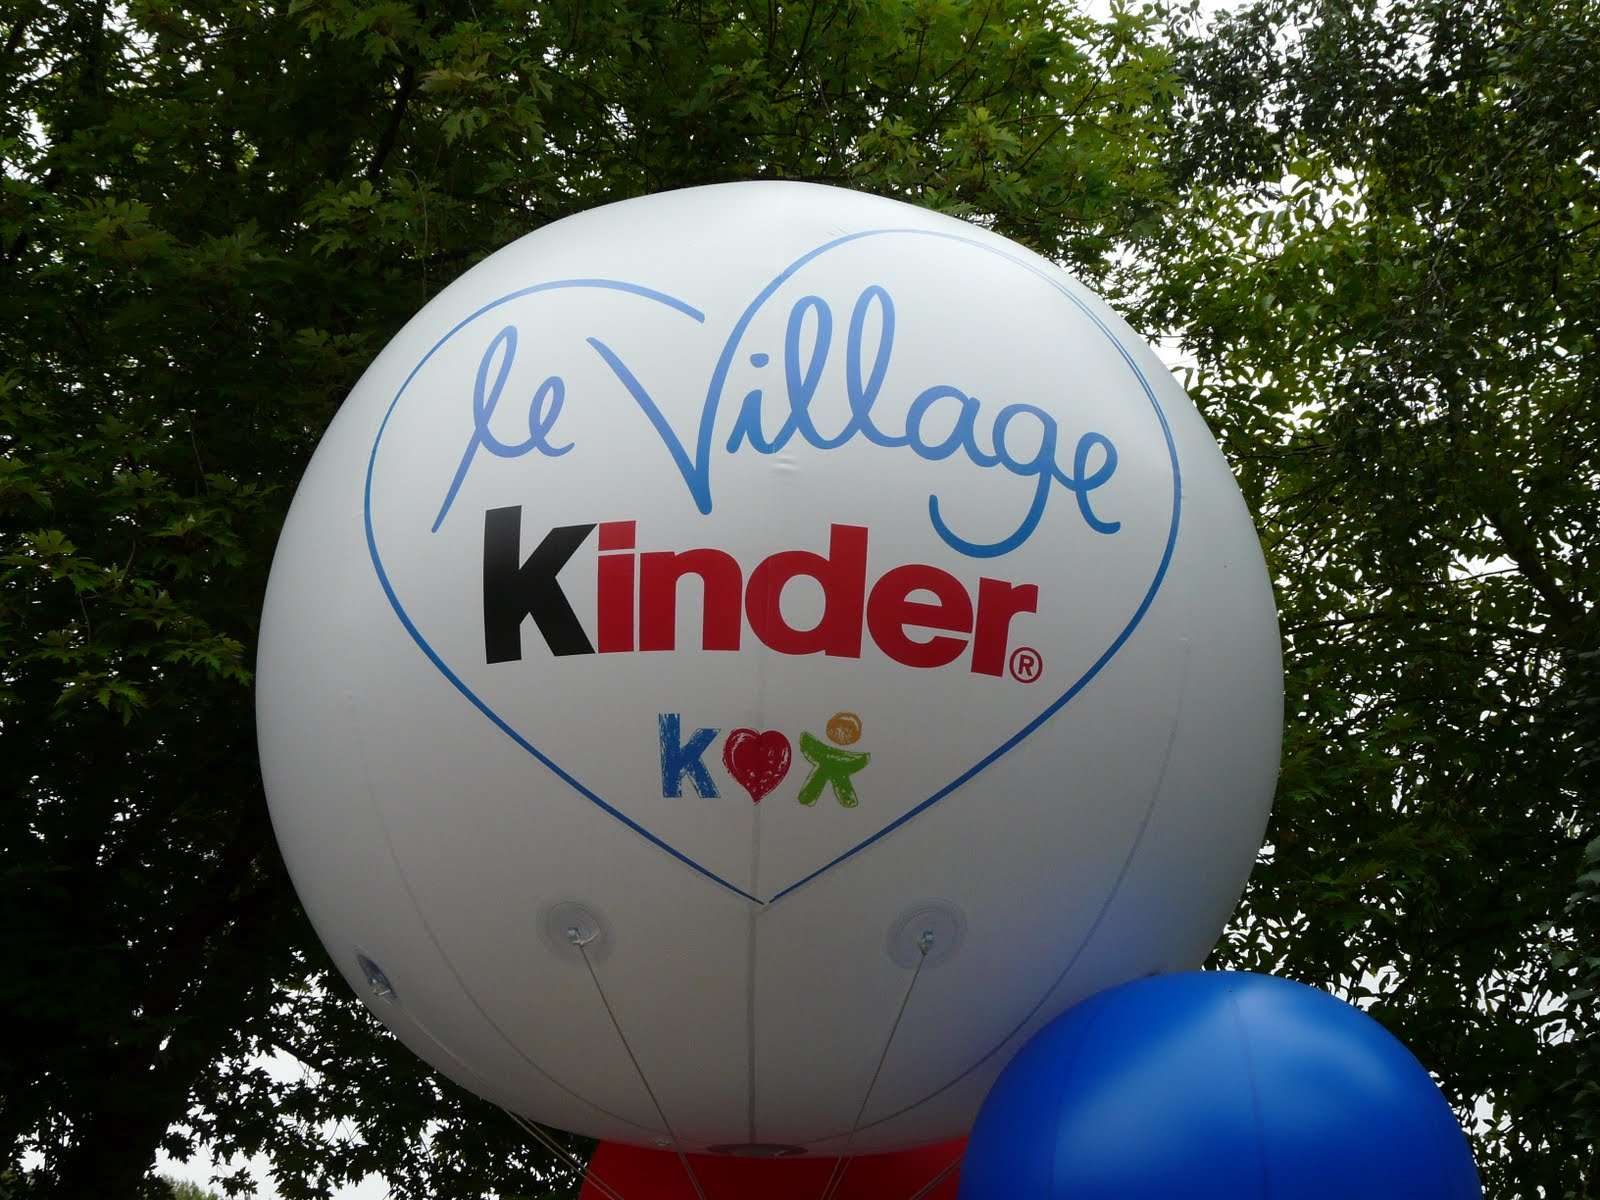 Ballon géant au village Kinder